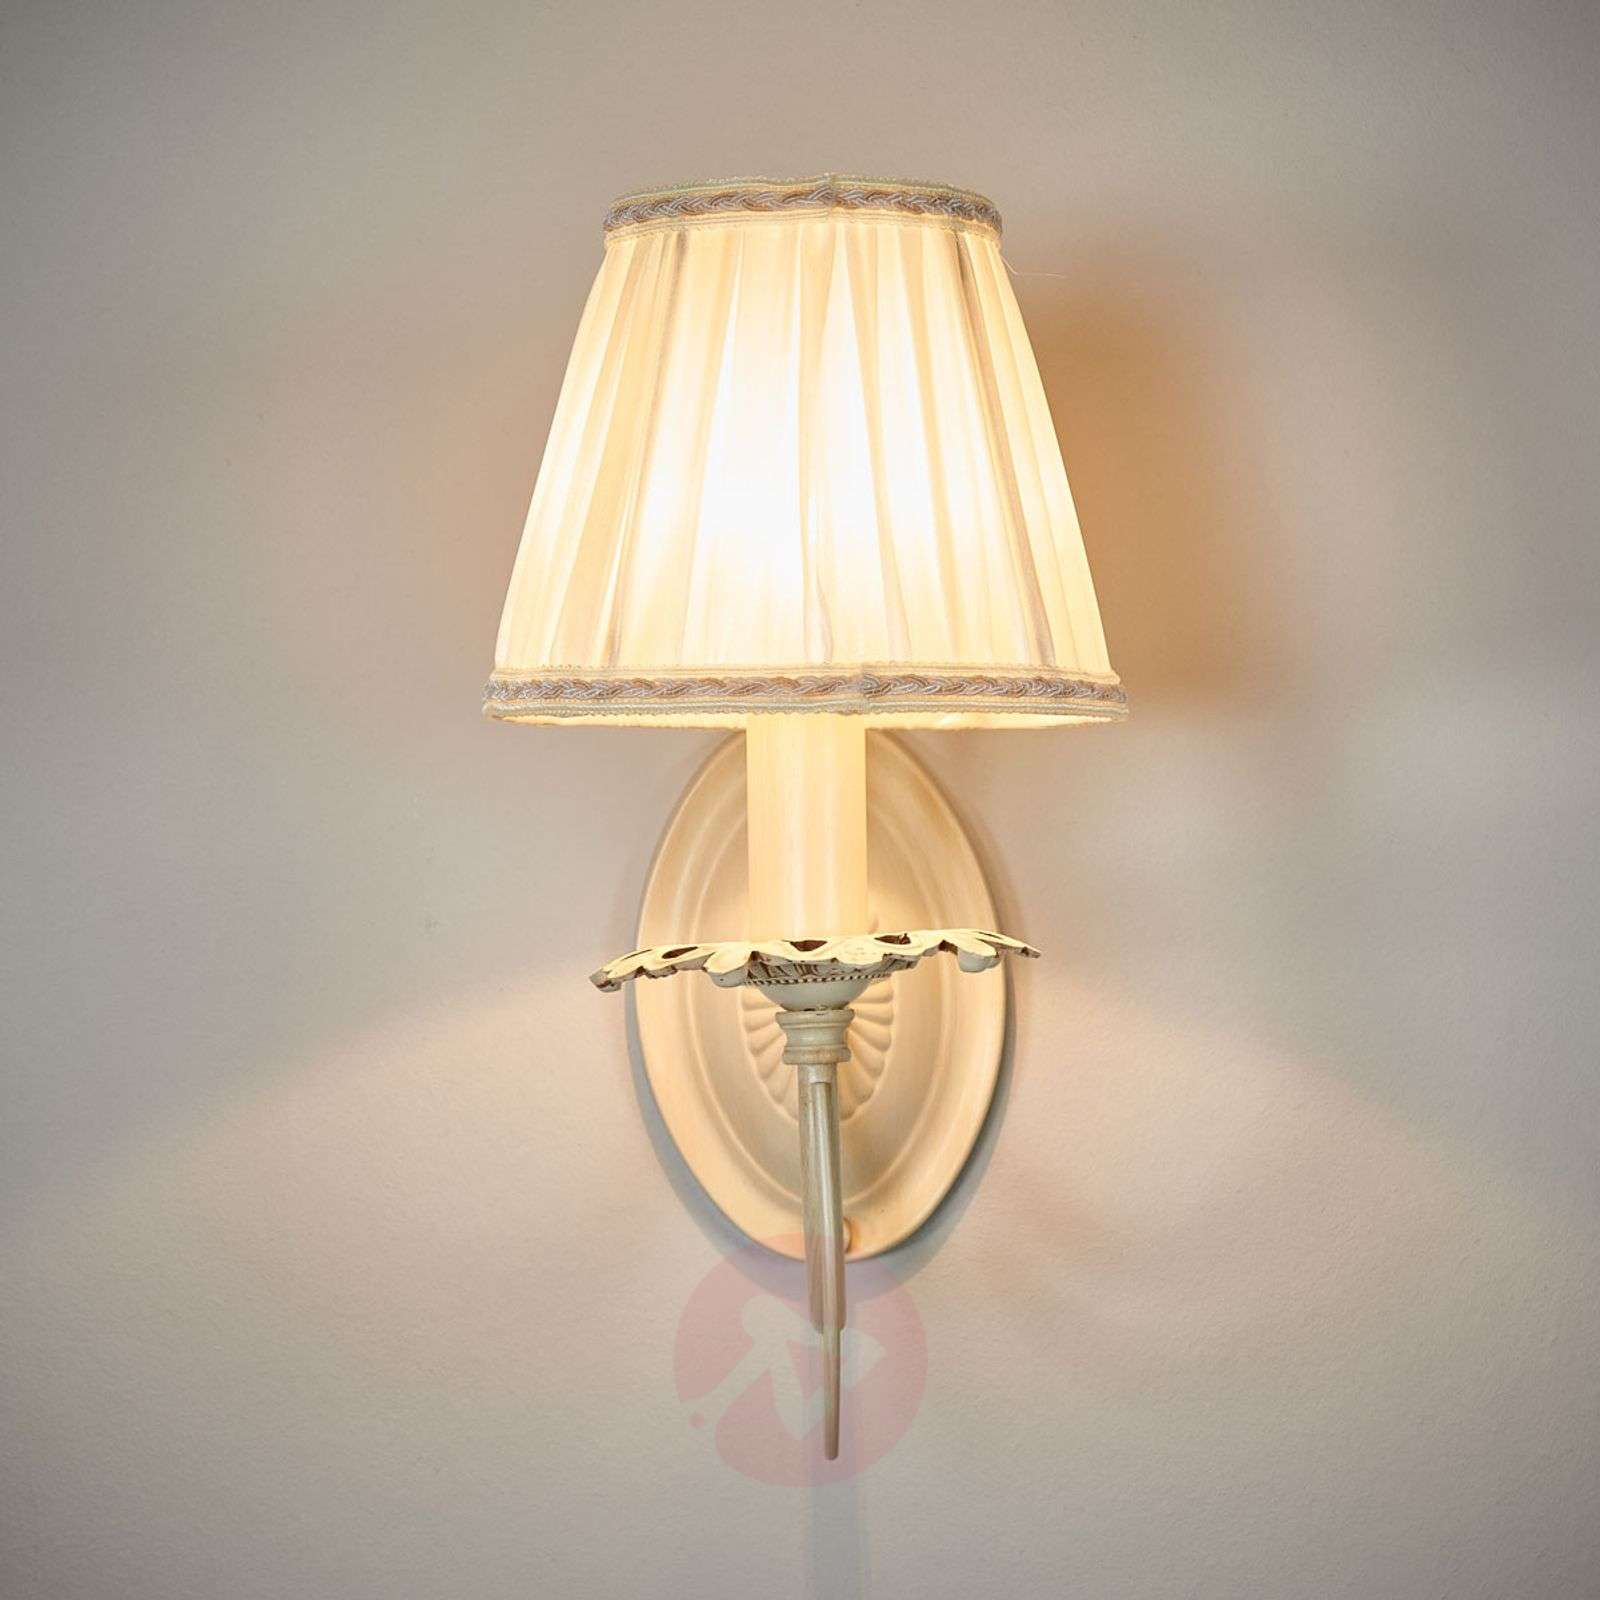 Elegant Wall Lamp Olivia With Pleated Shade